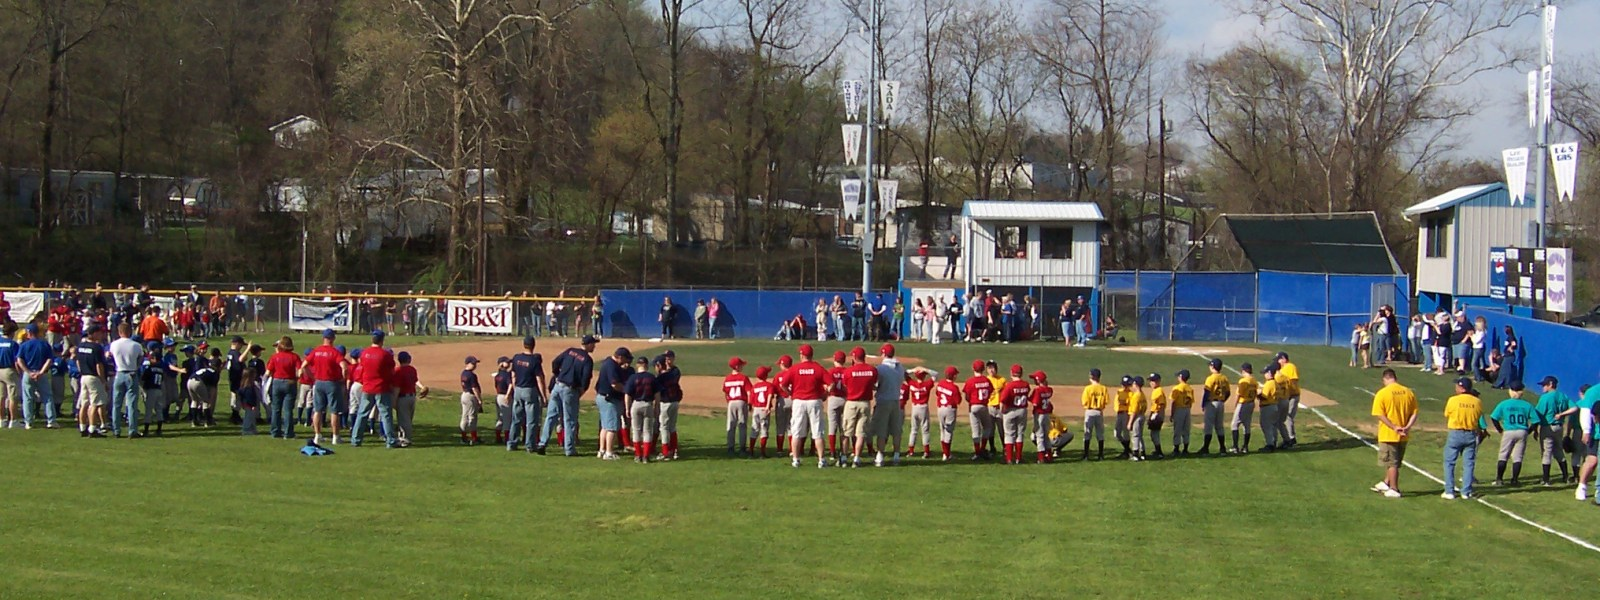 Little League Opening Day, 2008